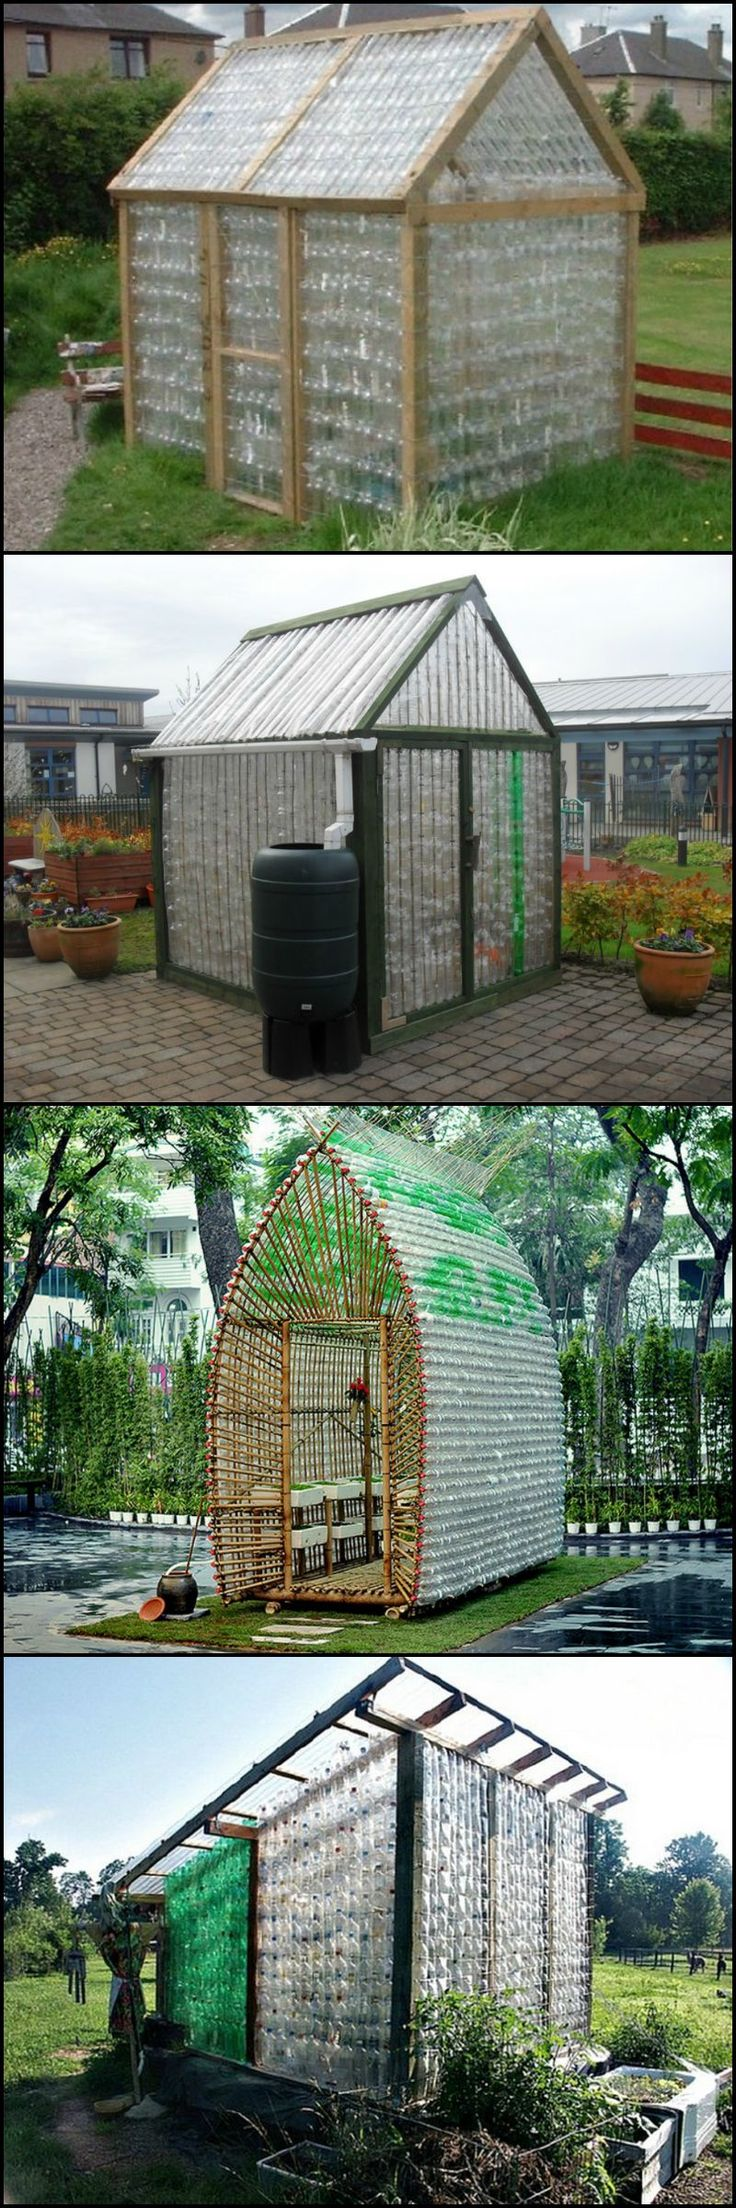 Building out of recycled materials is a great way to save money and be kind to the environment. Stop throwing out all those PET bottles! Turn them into a glasshouse instead!  These many examples of greenhouses made from recycled plastic bottles show that the principle work http://theownerbuildernetwork.co/vrr1  We're starting to collect plastic bottles, how about you?